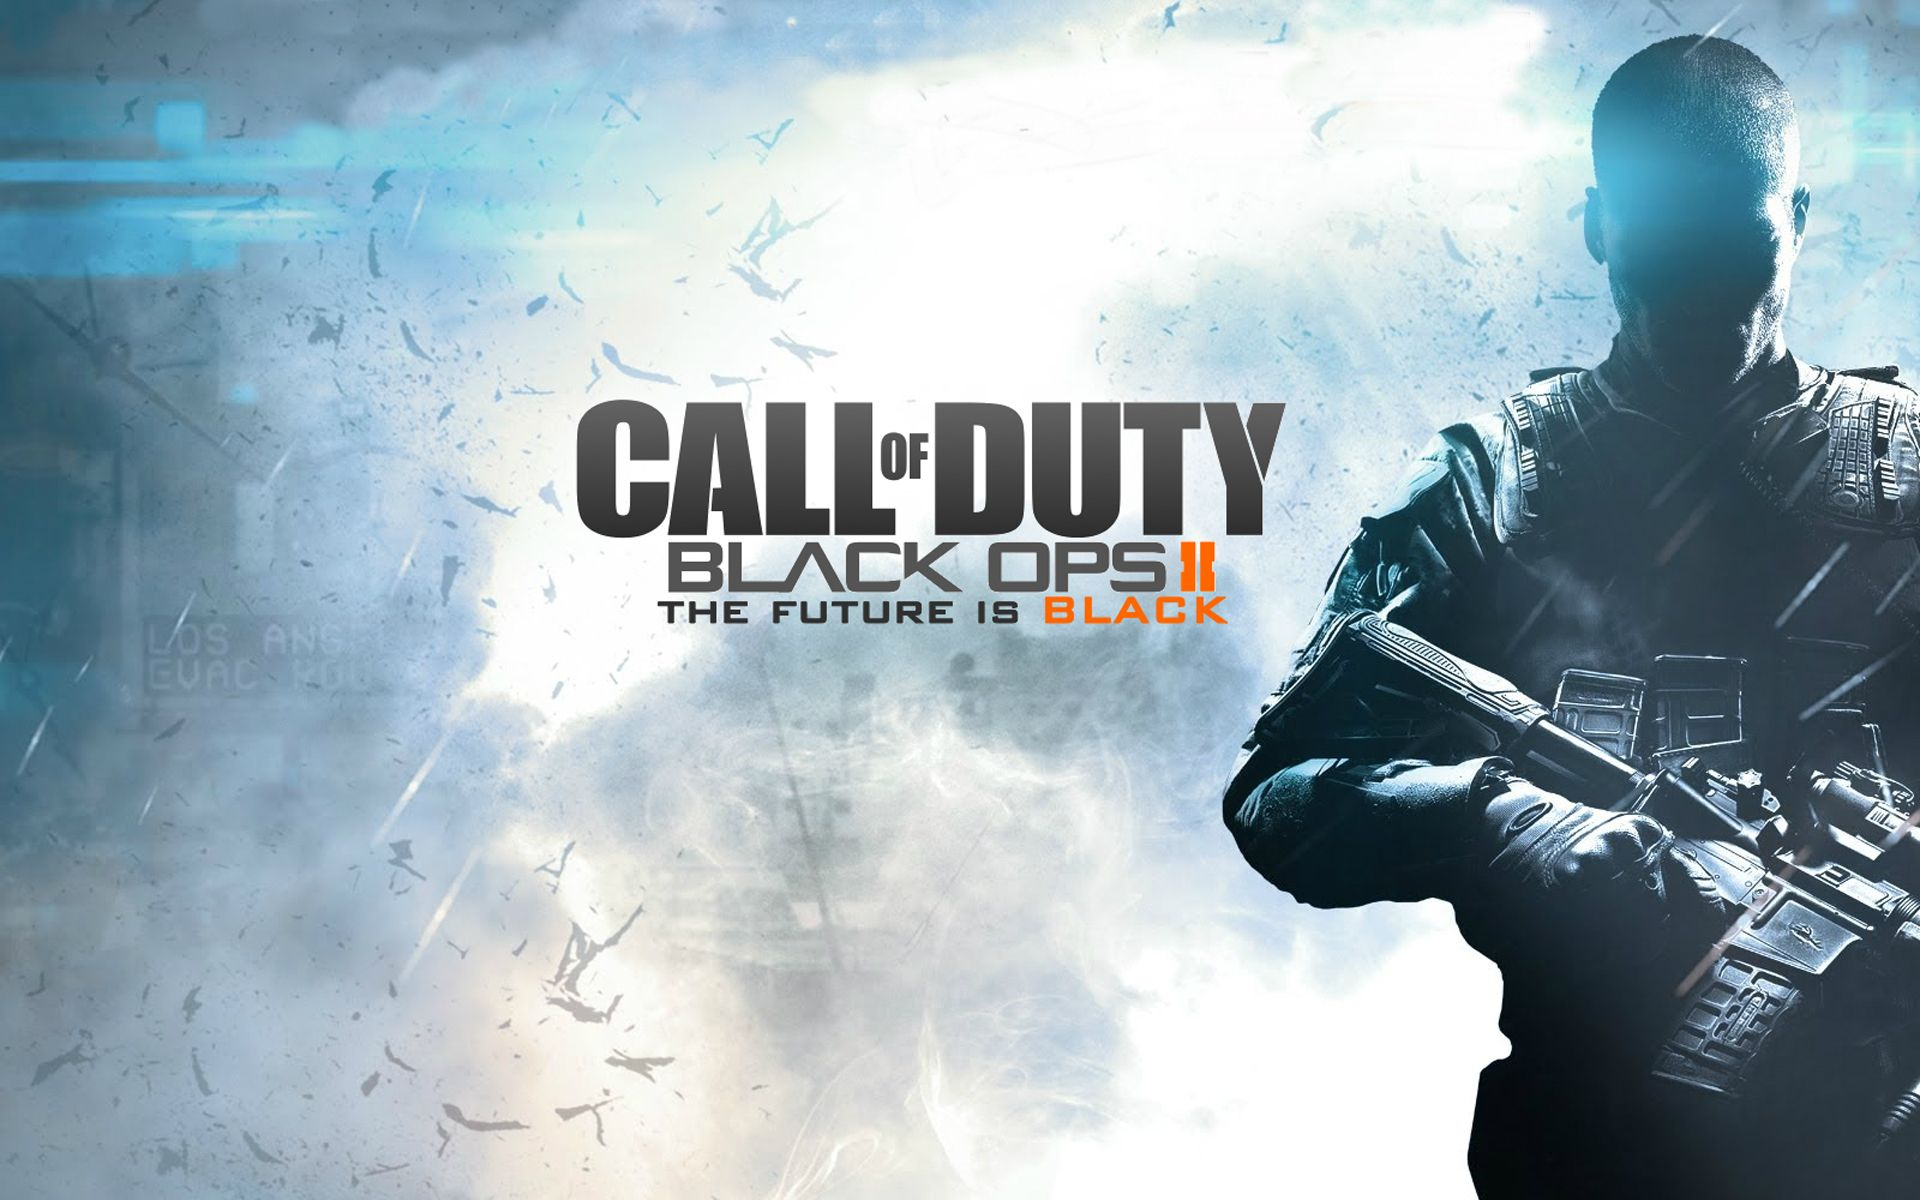 Free Steam Games Gift Cards Call Of Duty Black Ops 3 Call Duty Black Ops Black Ops